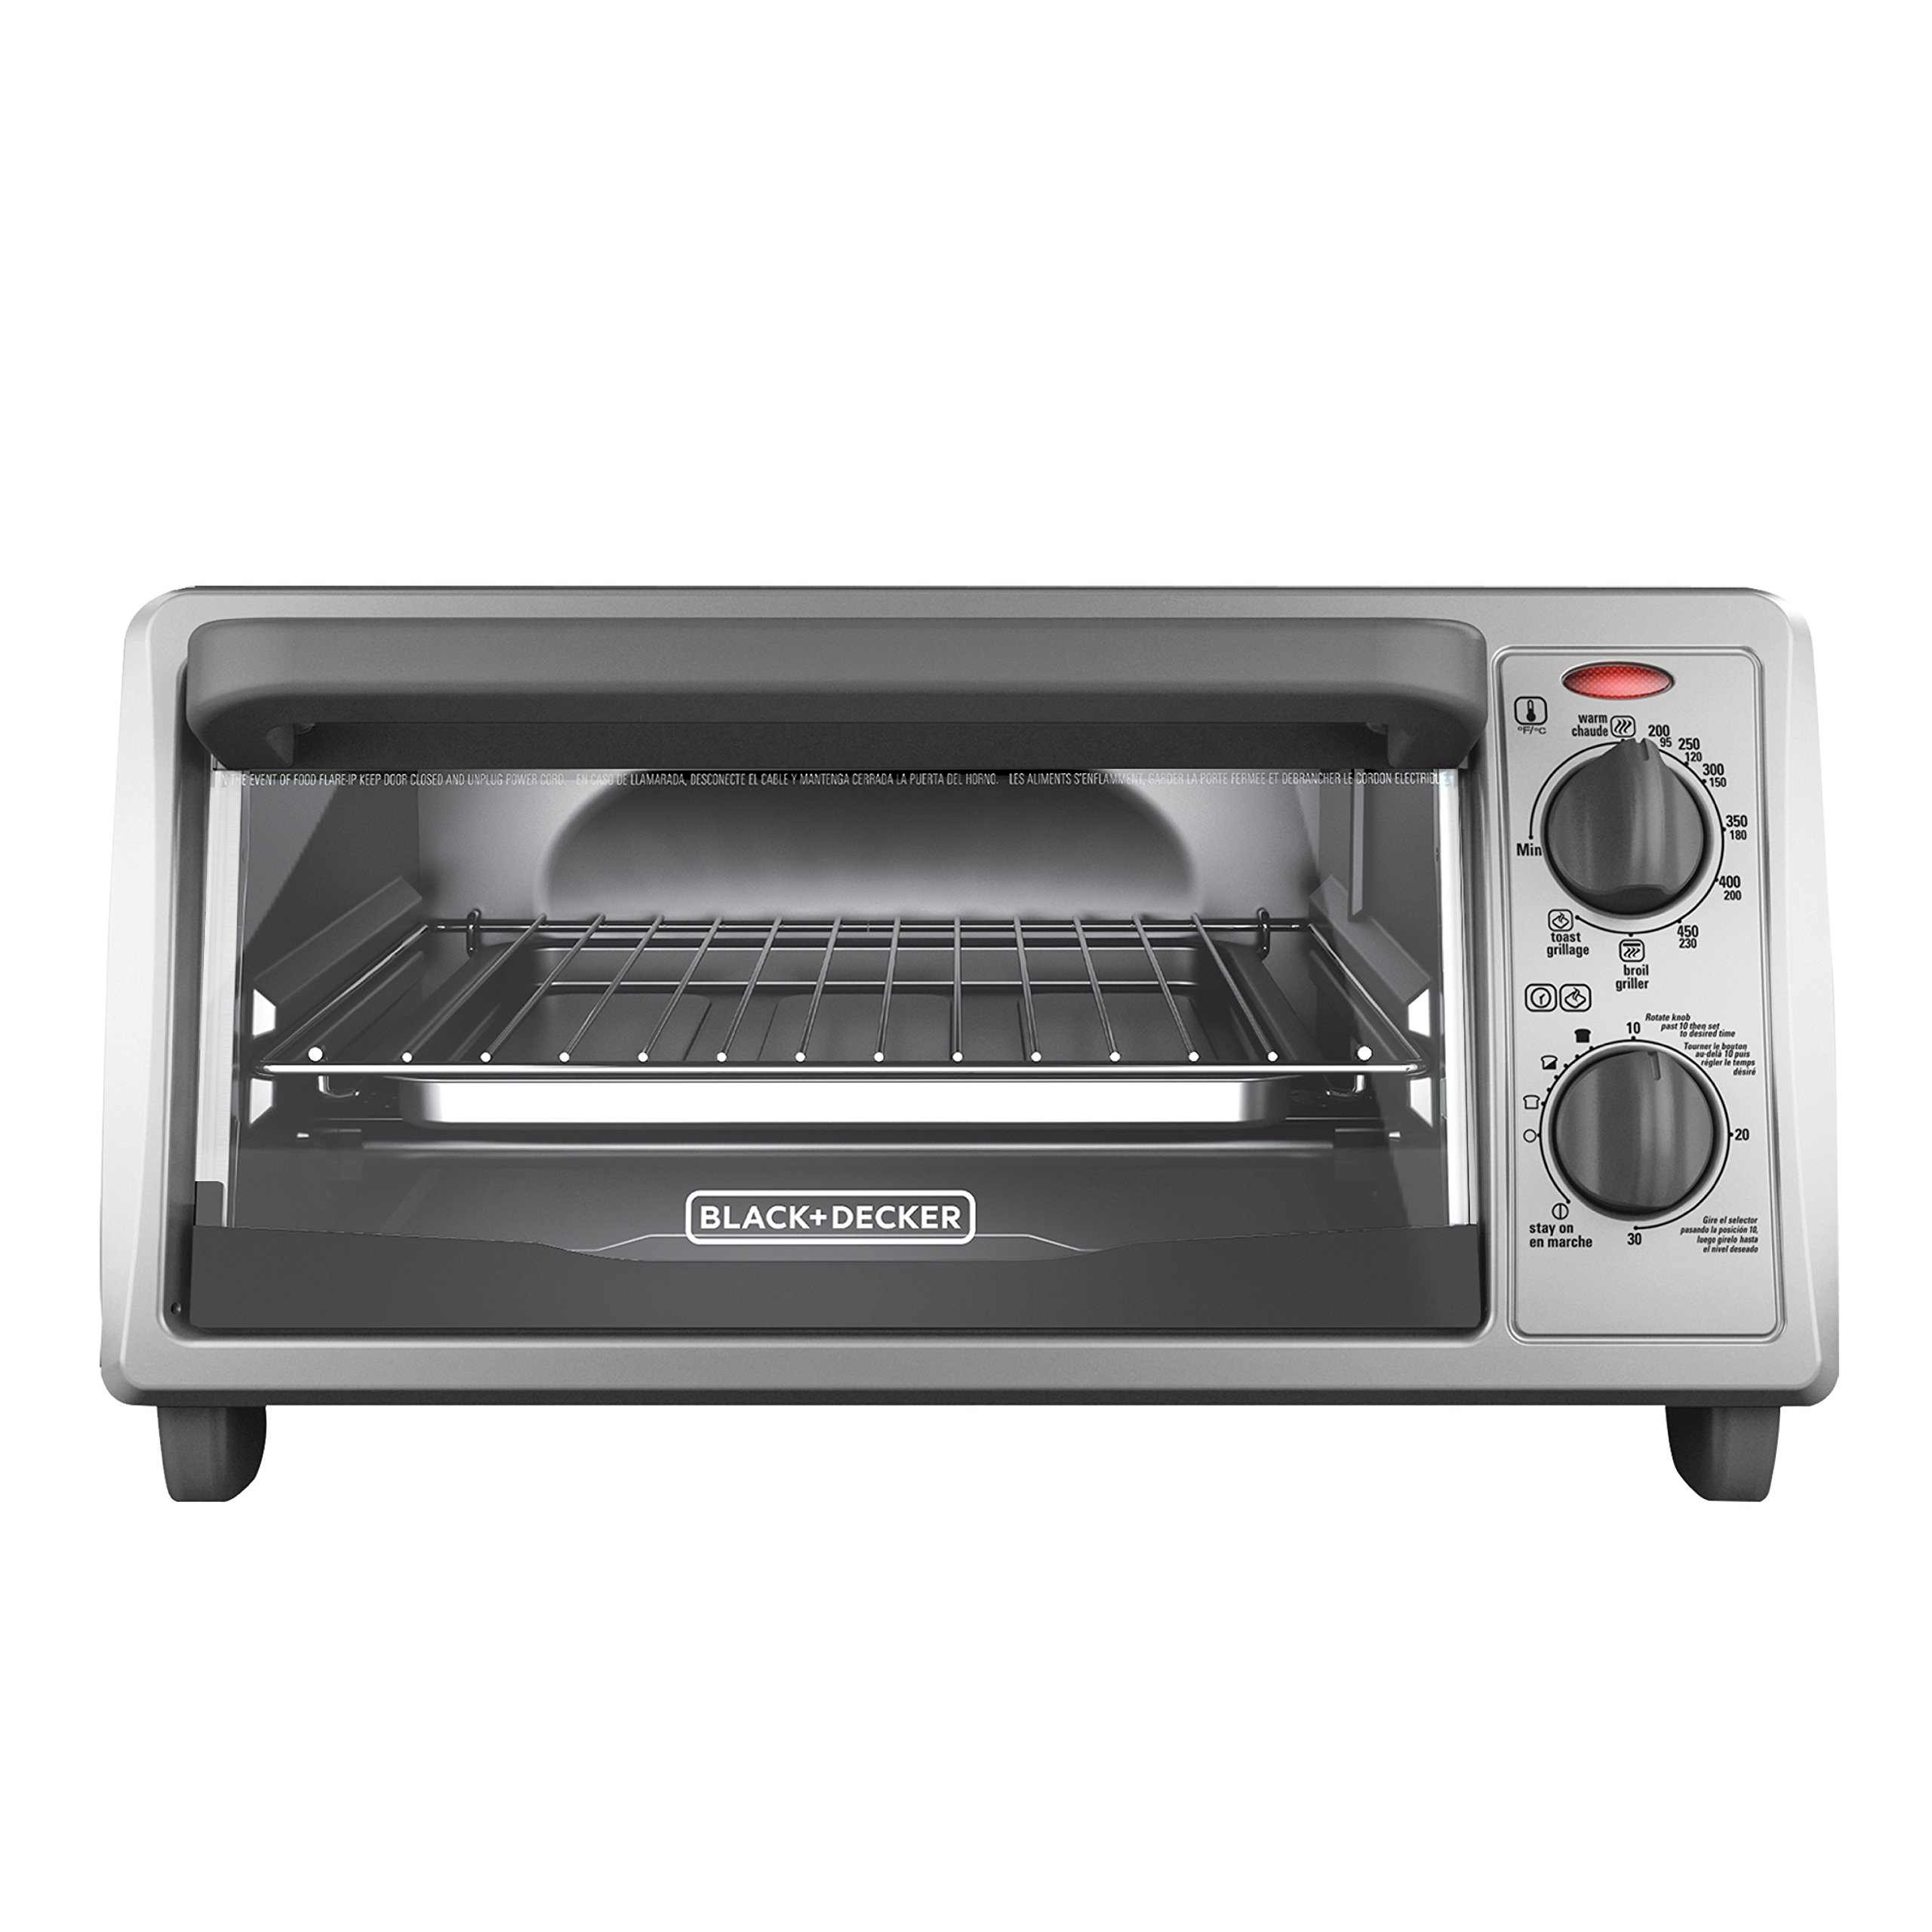 BLACK+DECKER 4-Slice Countertop Toaster Oven, Stainless steel Silver TO1322SBD by BLACK+DECKER (Image #1)